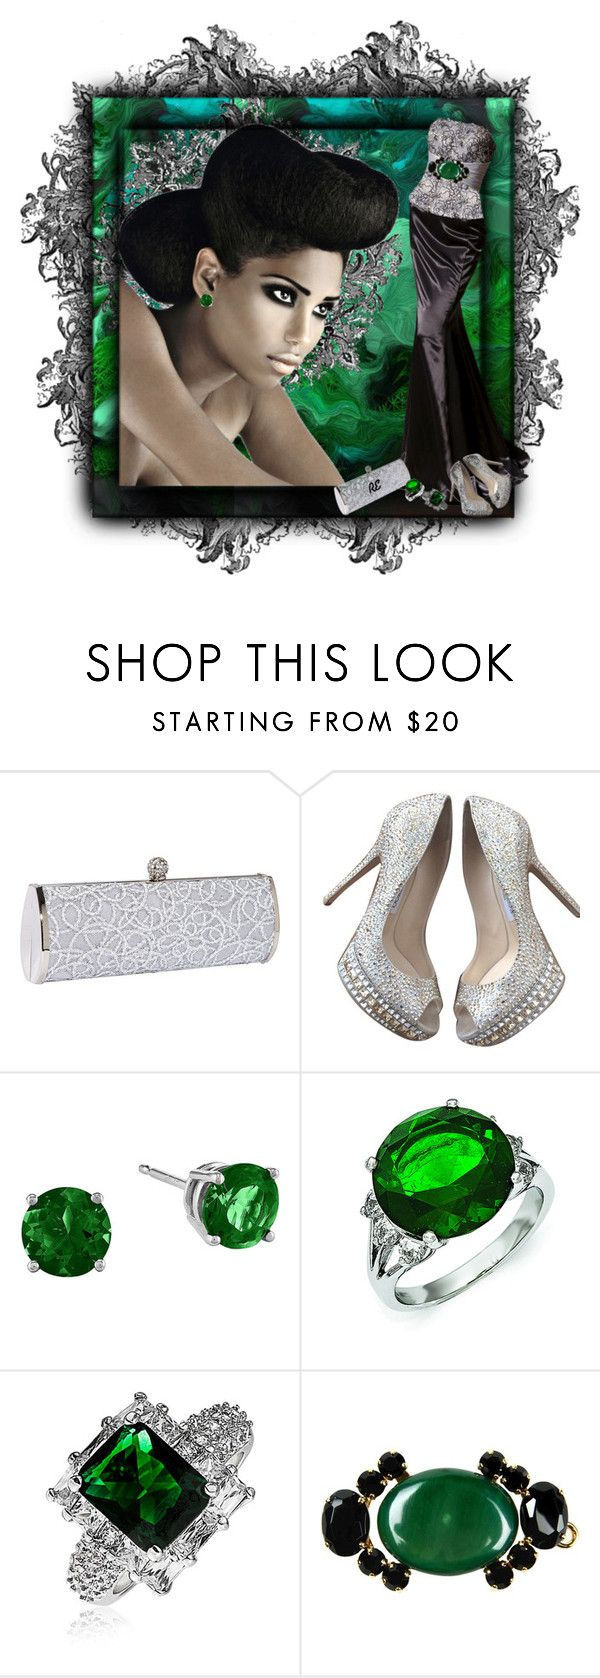 """Laced Up"" by rozelle ❤ liked on Polyvore featuring J. Furmani, Jimmy Choo, Kevin Jewelers, Bling Jewelry and Marni"